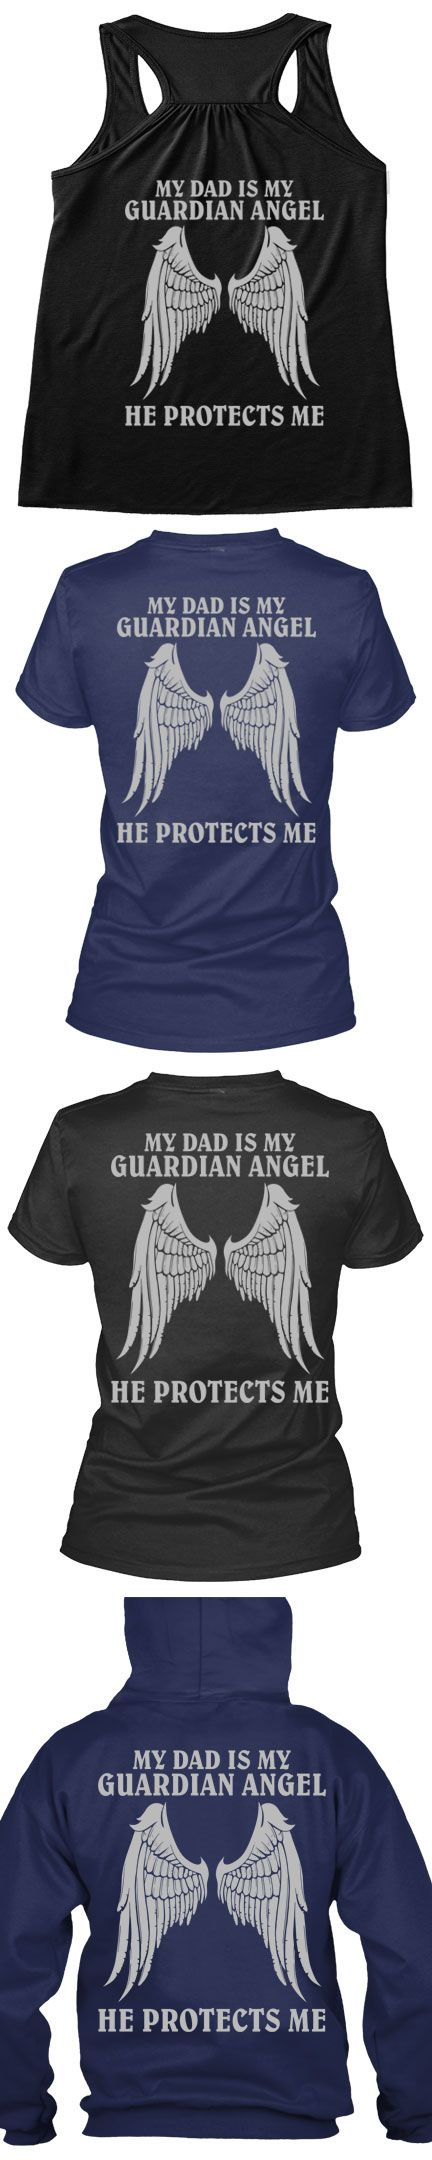 Is Your Dad Your Guardian Angel? Tag Someone You Want To Buy This For Or Get Yours, Click The Image To Buy It Now!